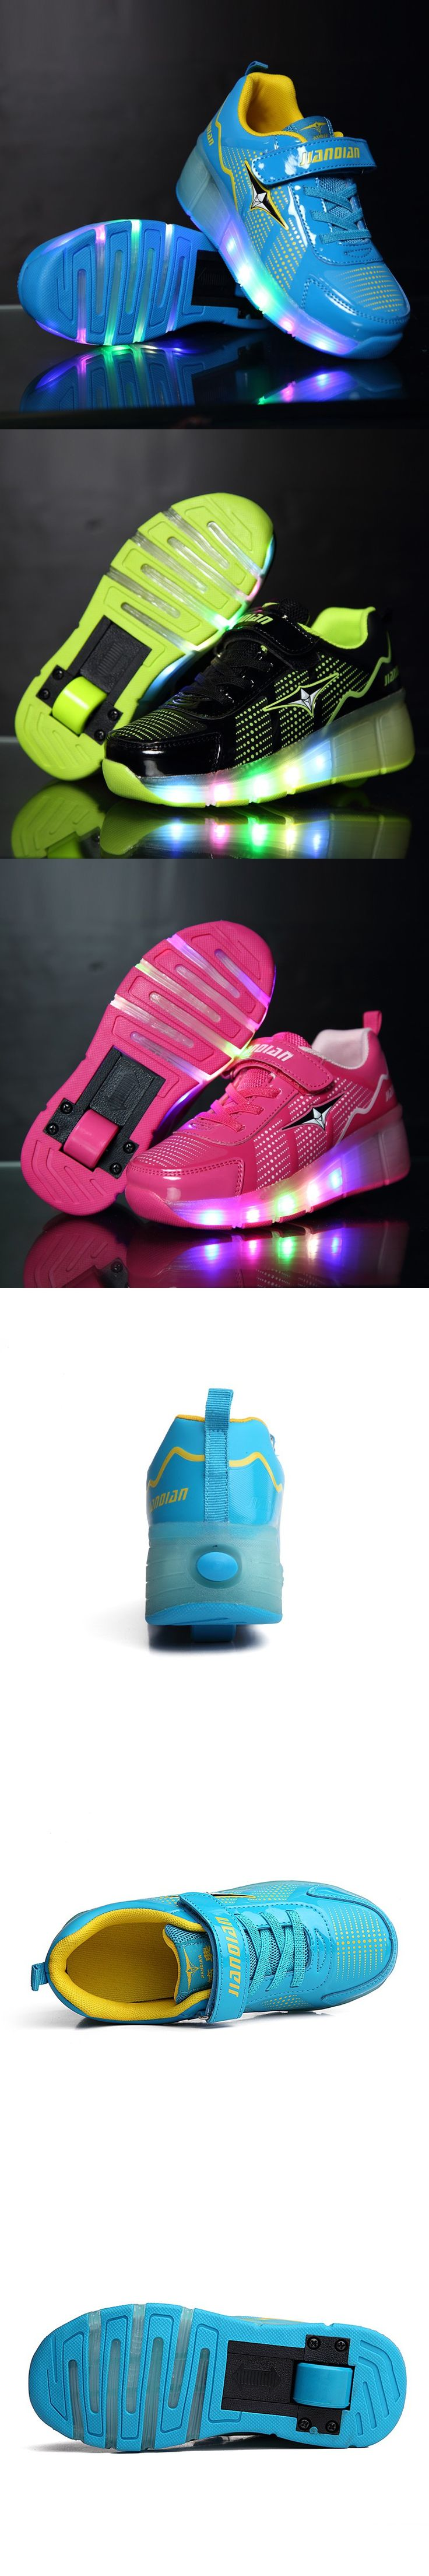 Children wheely Rolle Led Lights Kids Shoes With Wheels Wear-resistant for girls boys Sneakers Zapatillas Con Ruedas TQ6001 $44.05